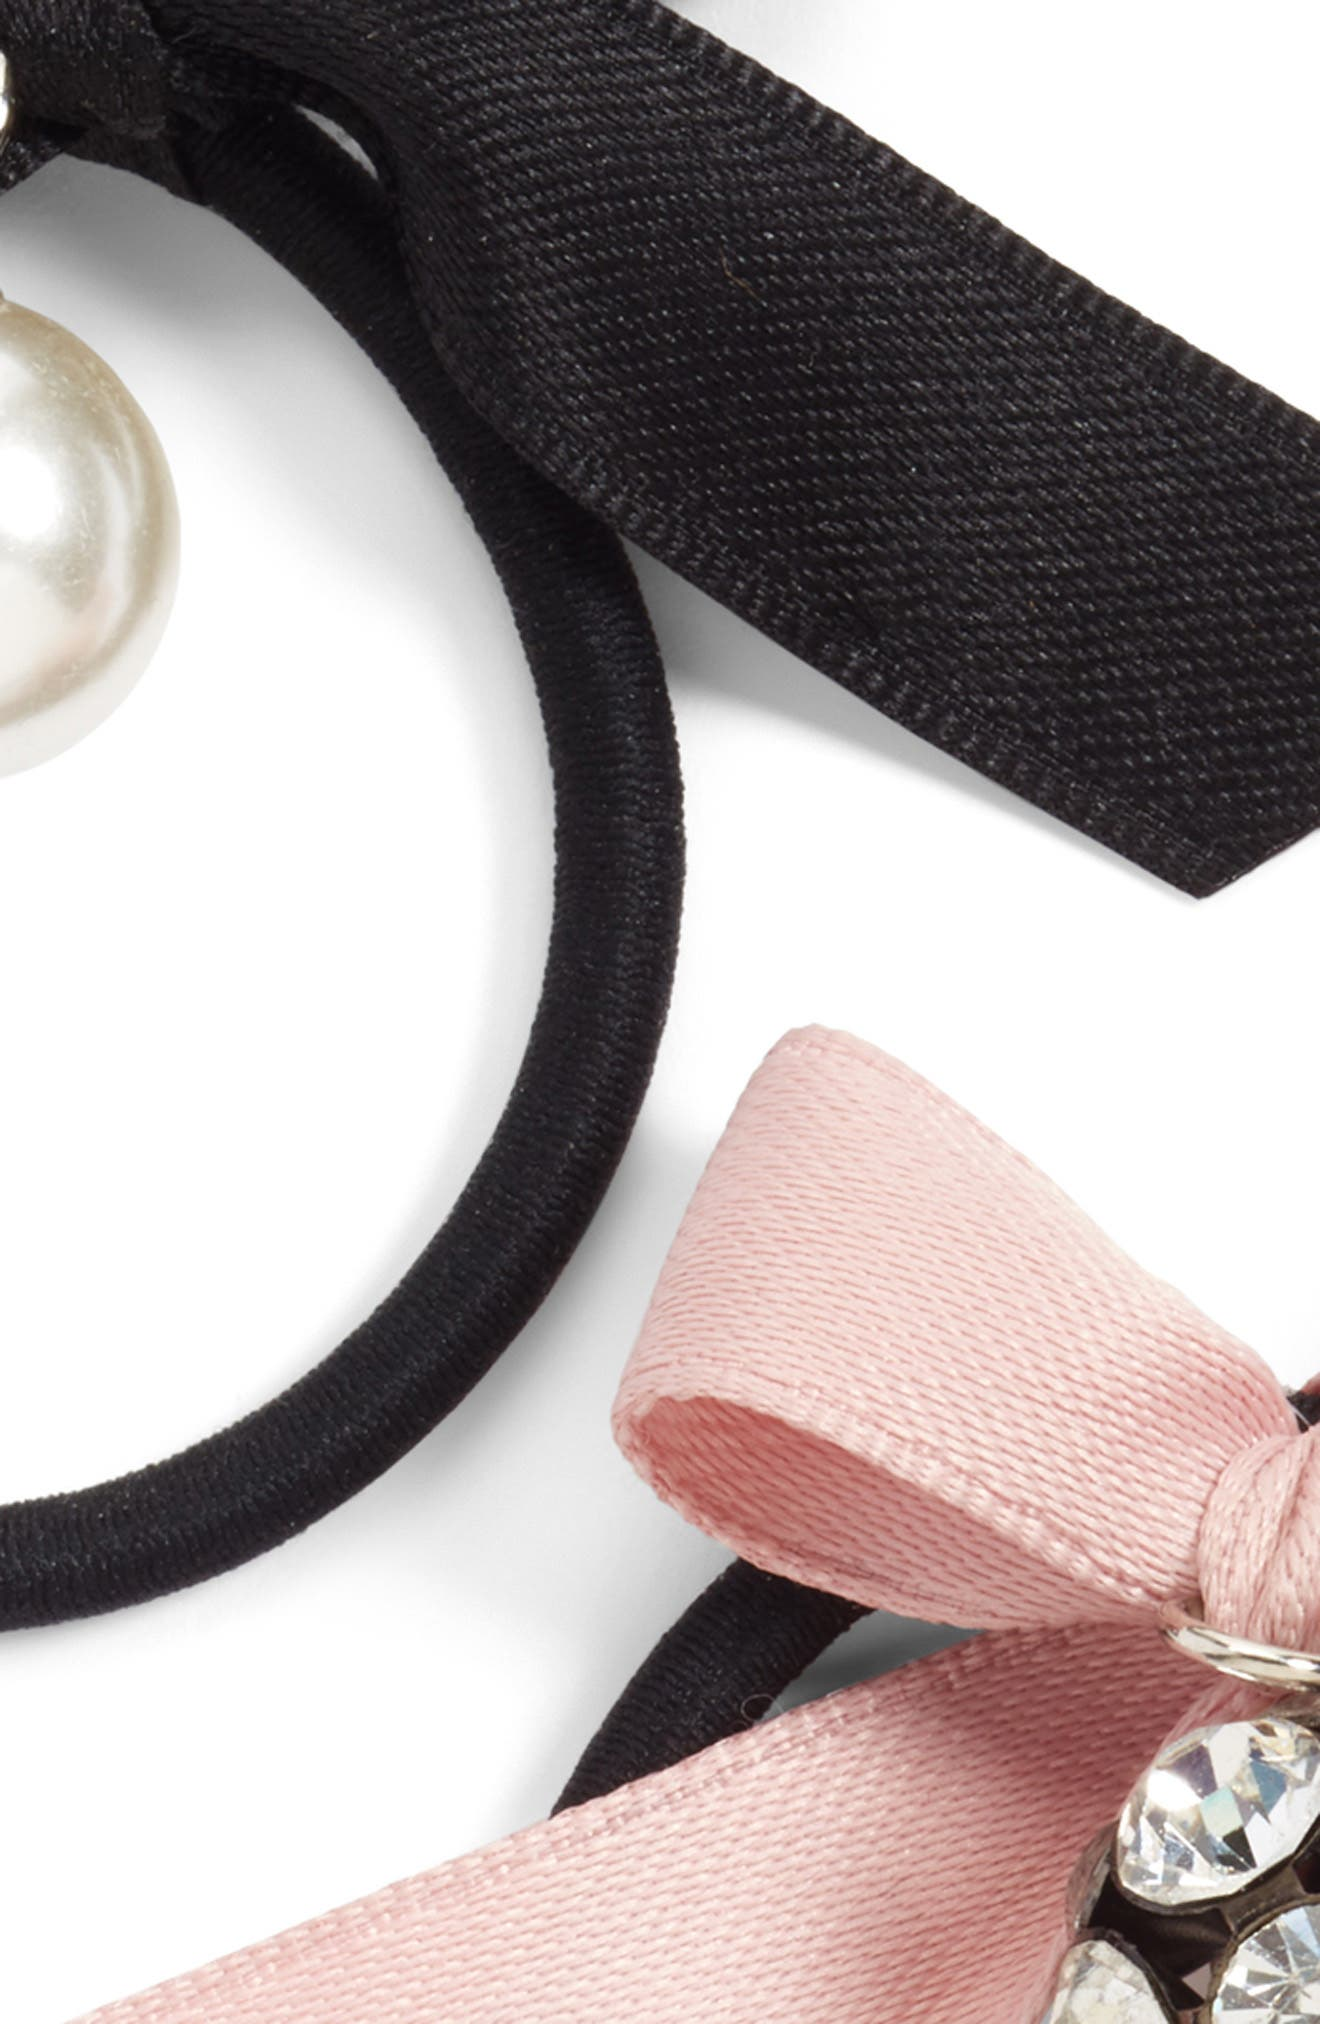 2-Pack Bow with Imitation Pearl & Crystal Charm Ponytail Holders,                             Alternate thumbnail 2, color,                             Black/ Pink